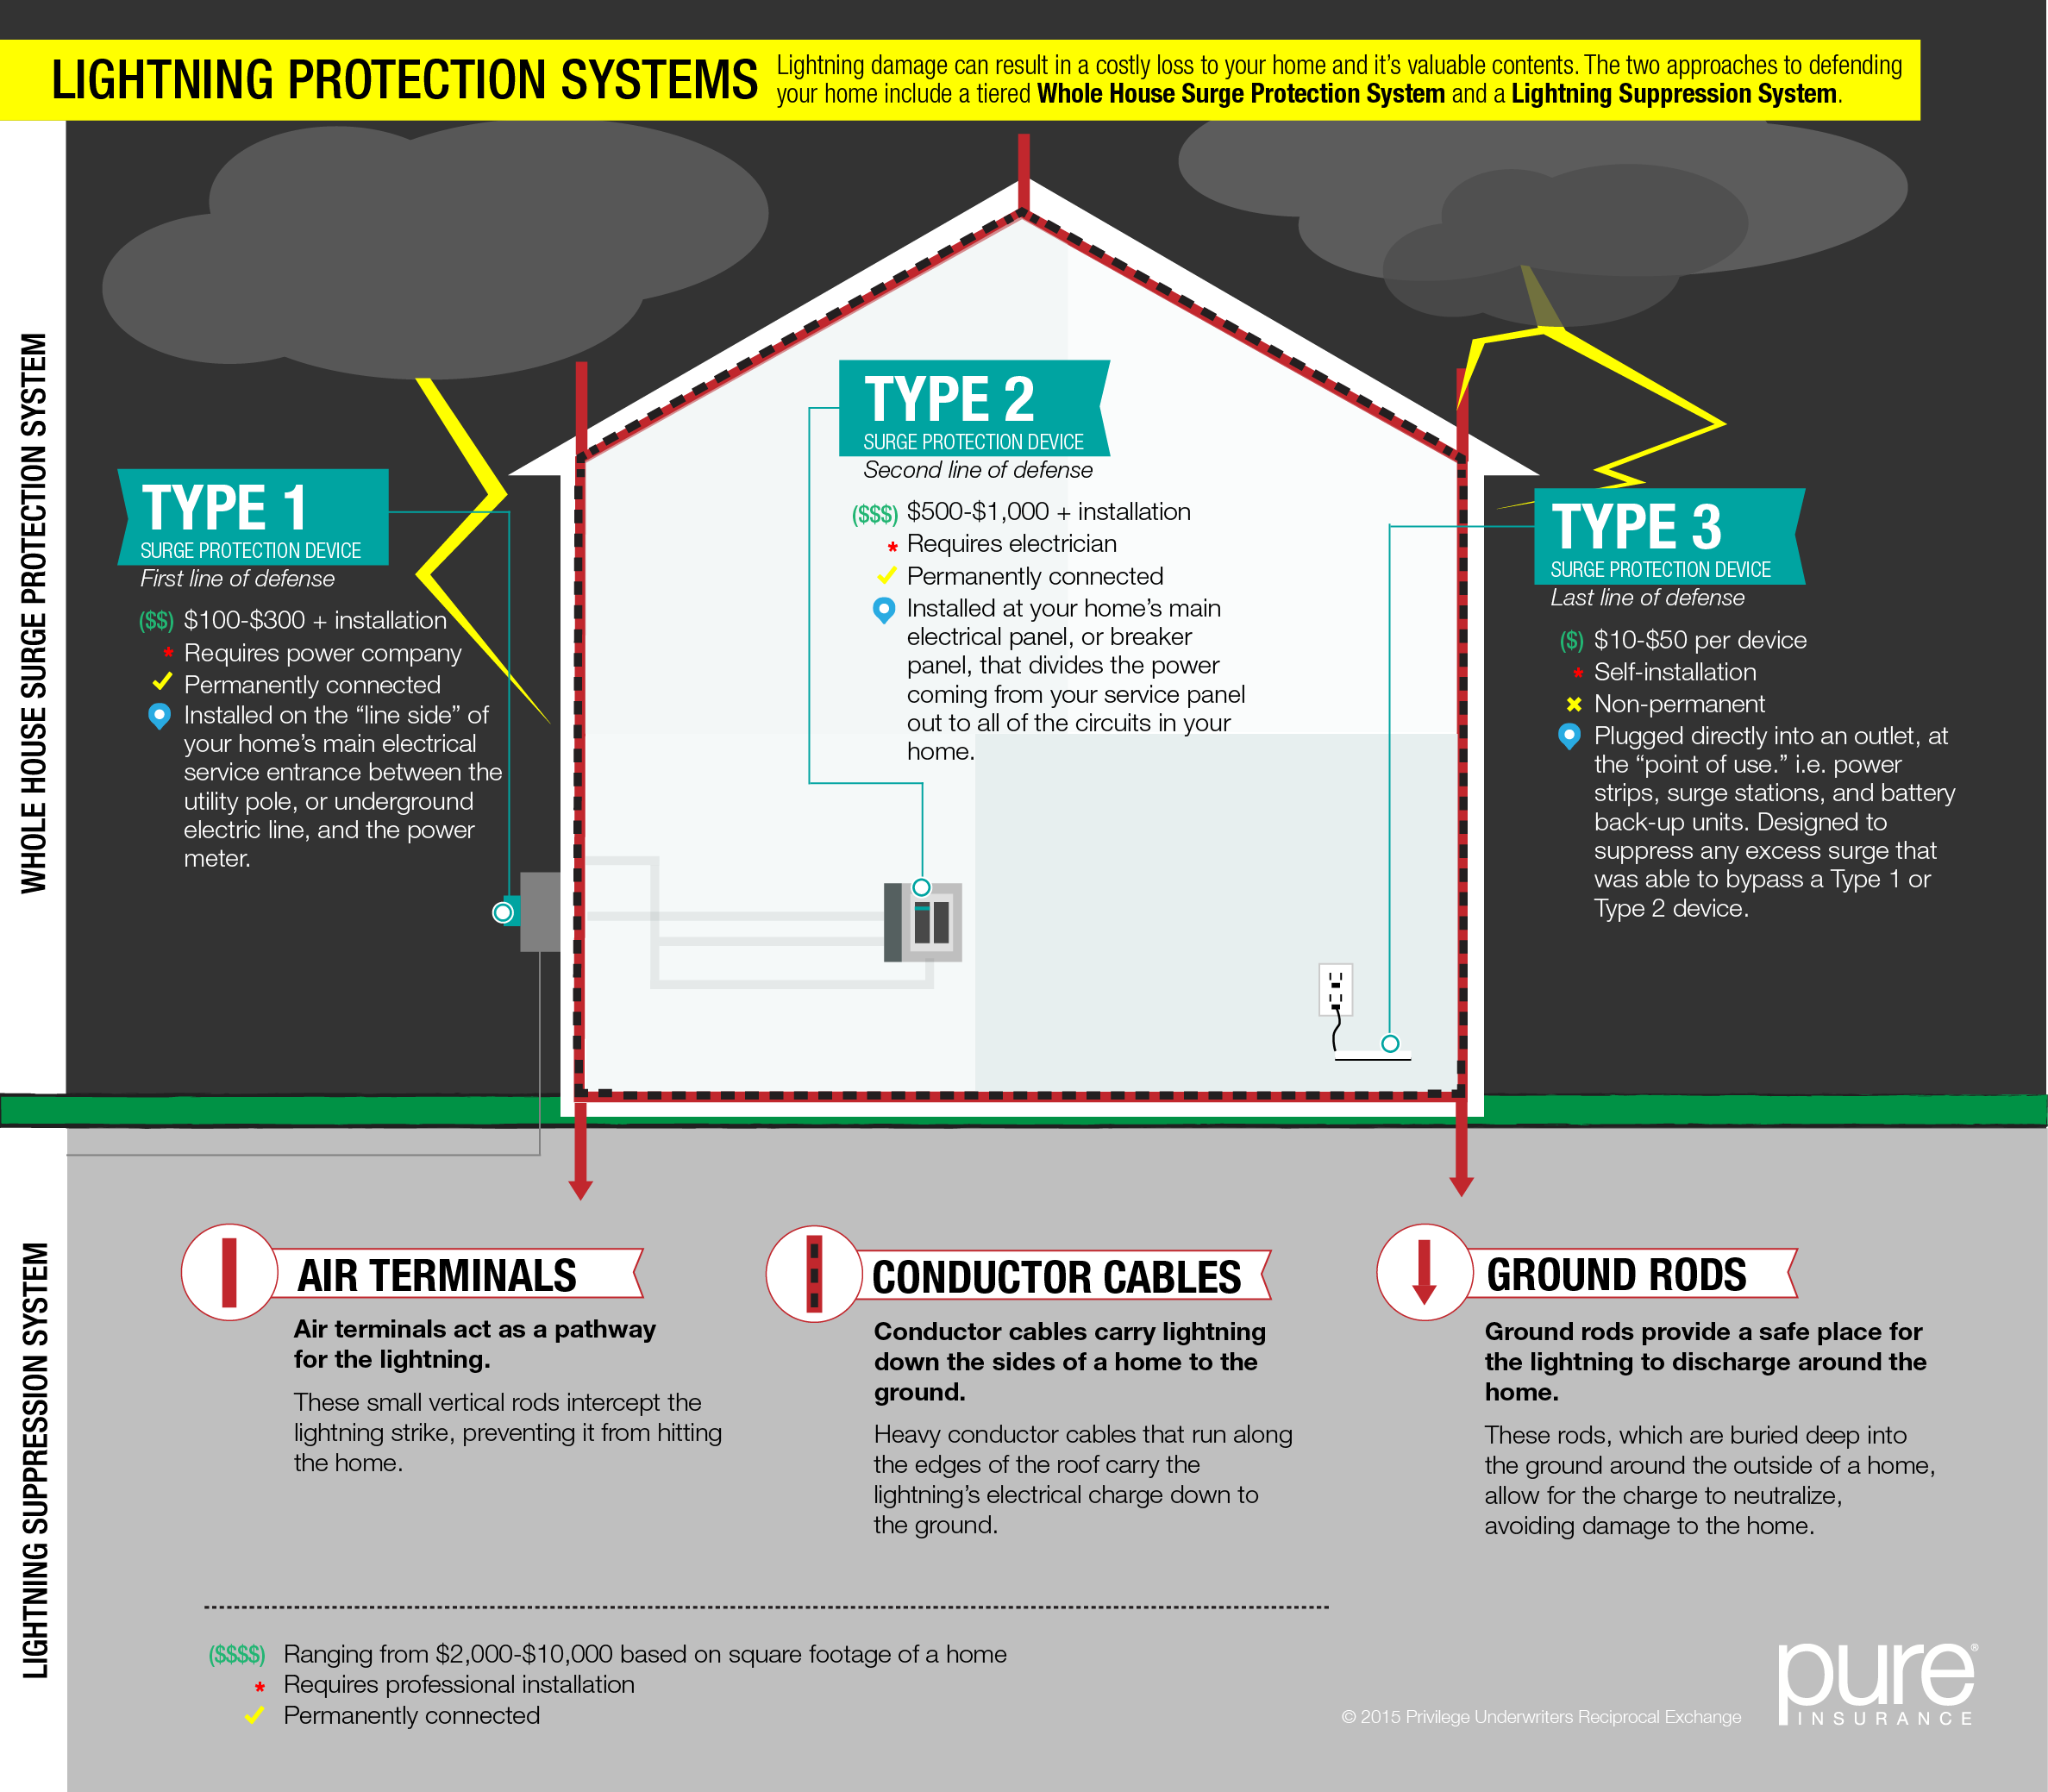 Protect Your Home From Lightning Damage | PURE Situation Room